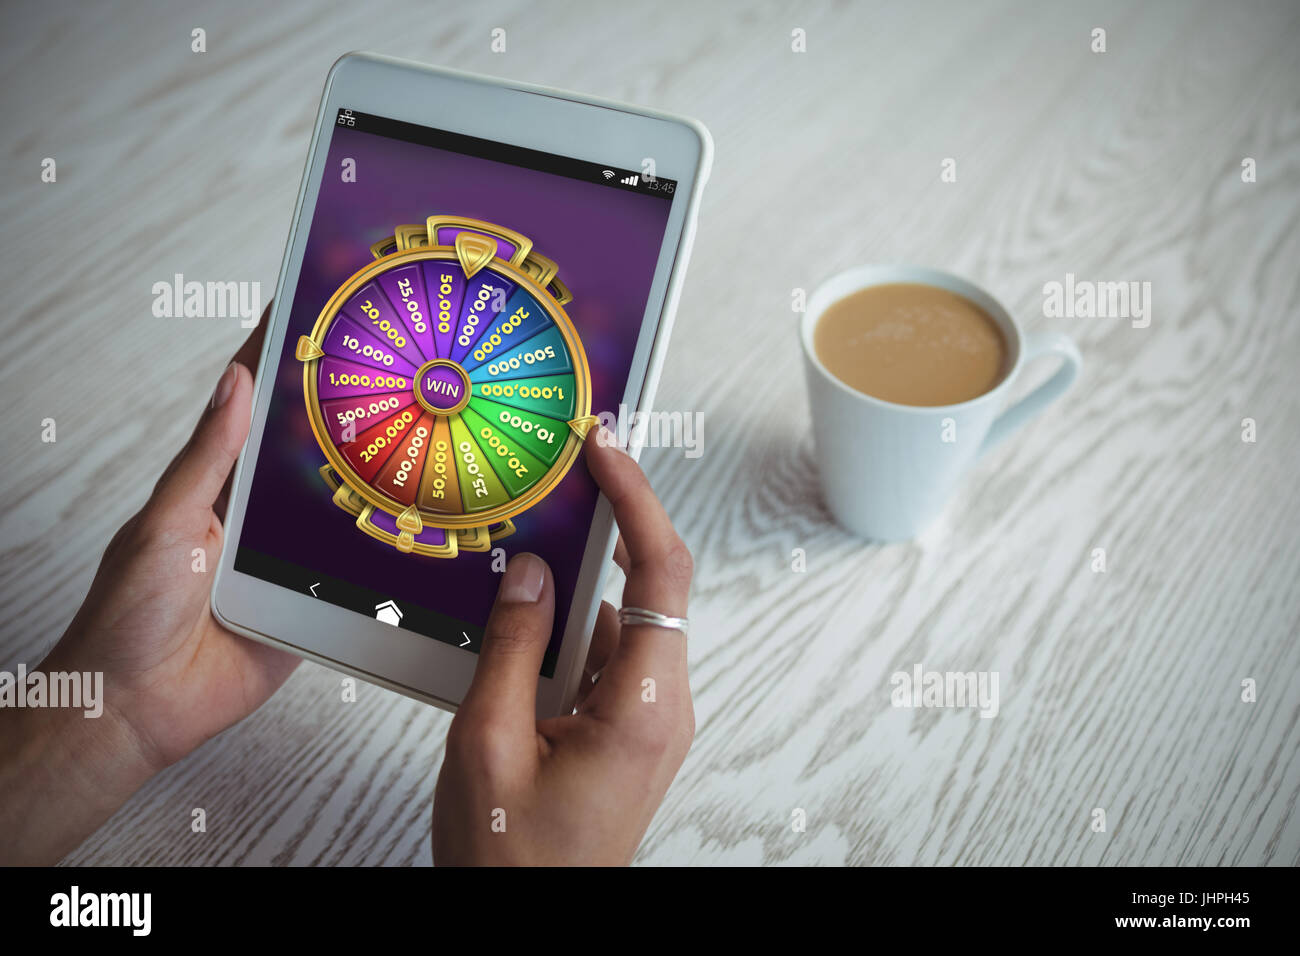 Multi colored fortune of wheel on mobile display against cropped hands of woman holding tablet at table - Stock Image